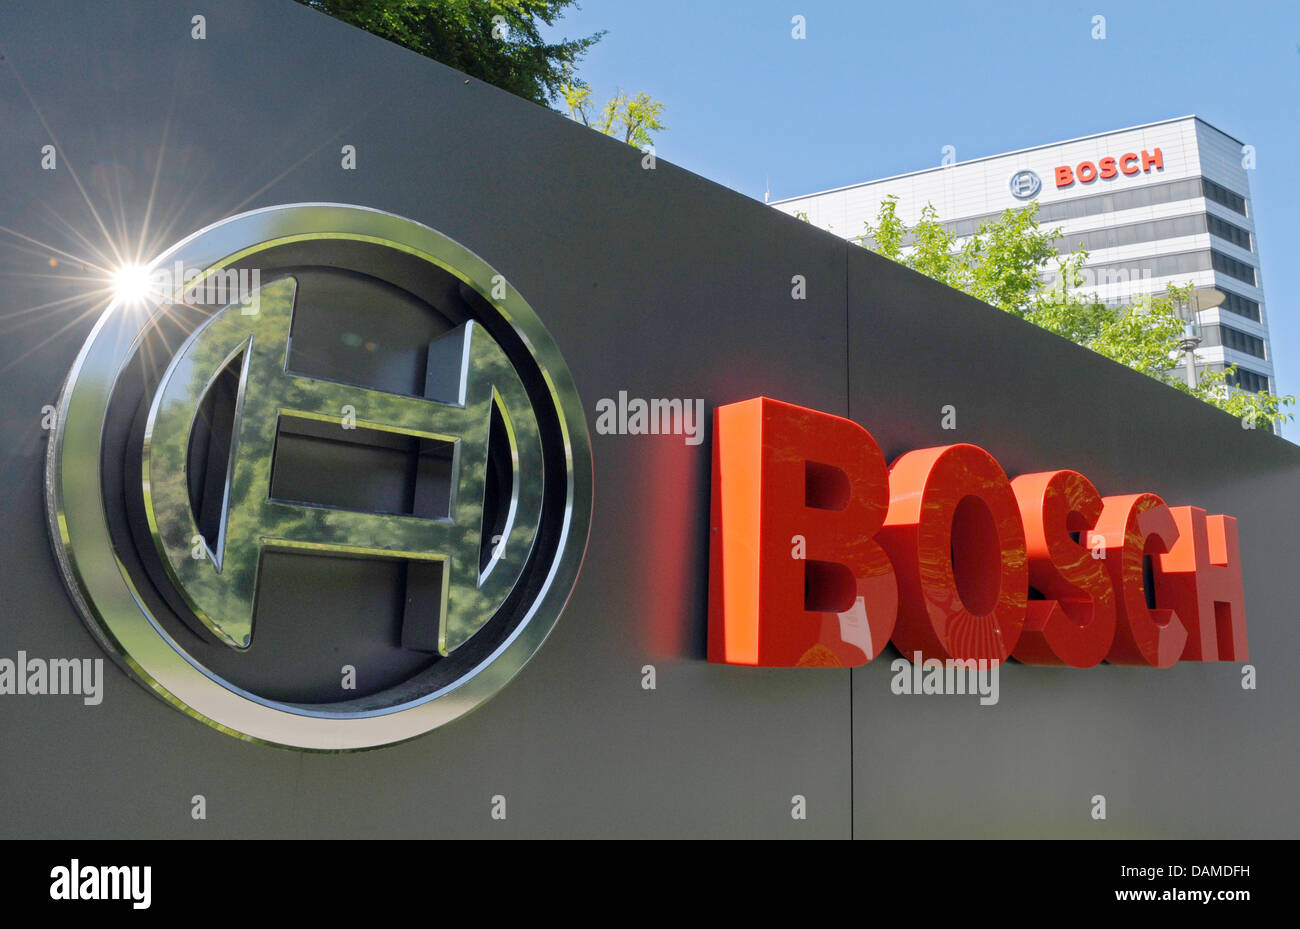 Ceo Bosch Stockfotos & Ceo Bosch Bilder - Alamy